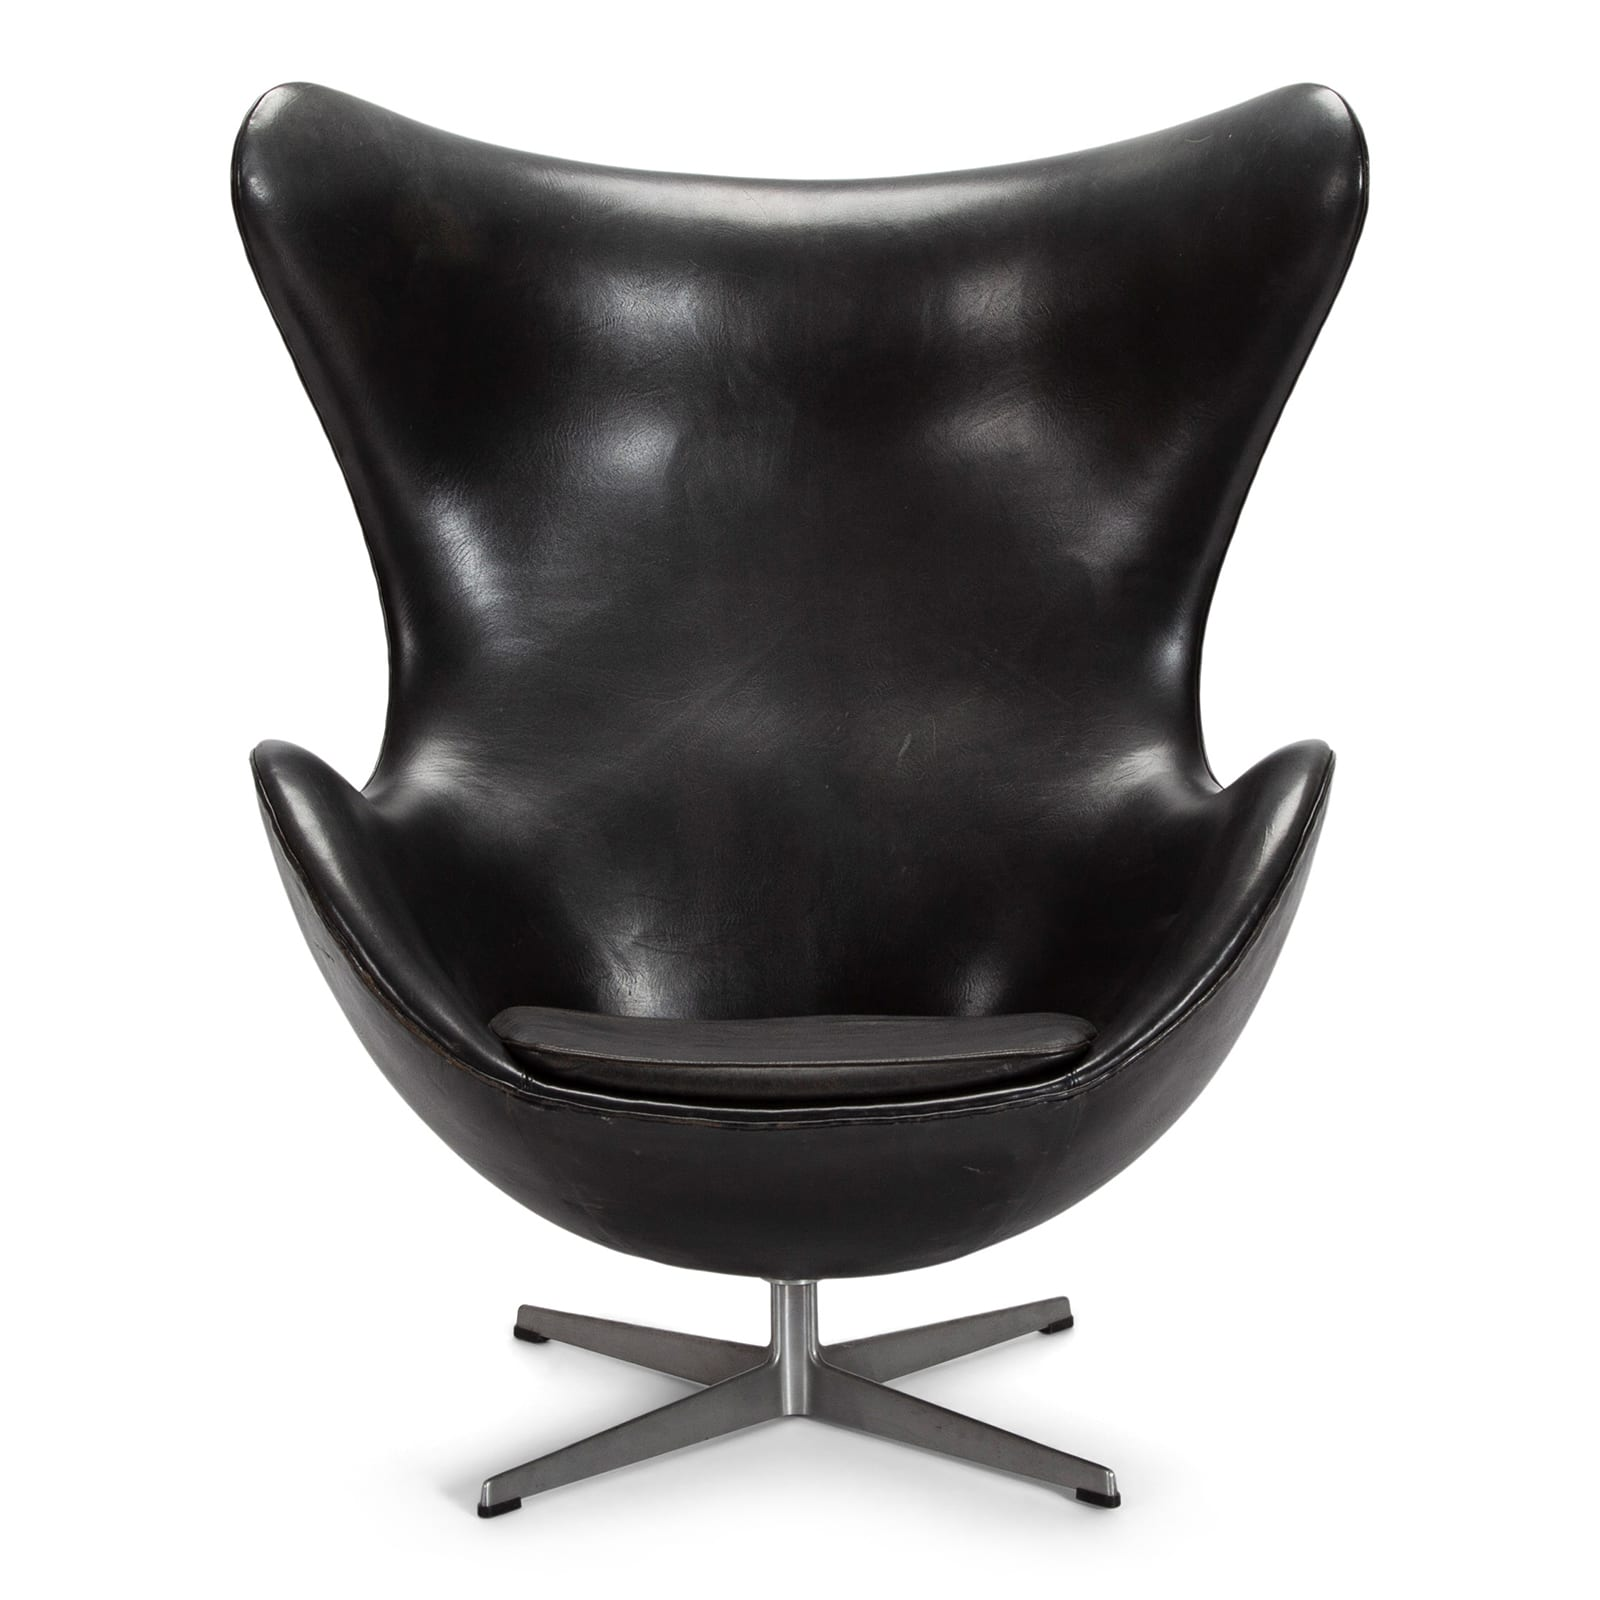 Egg chair, model 3317